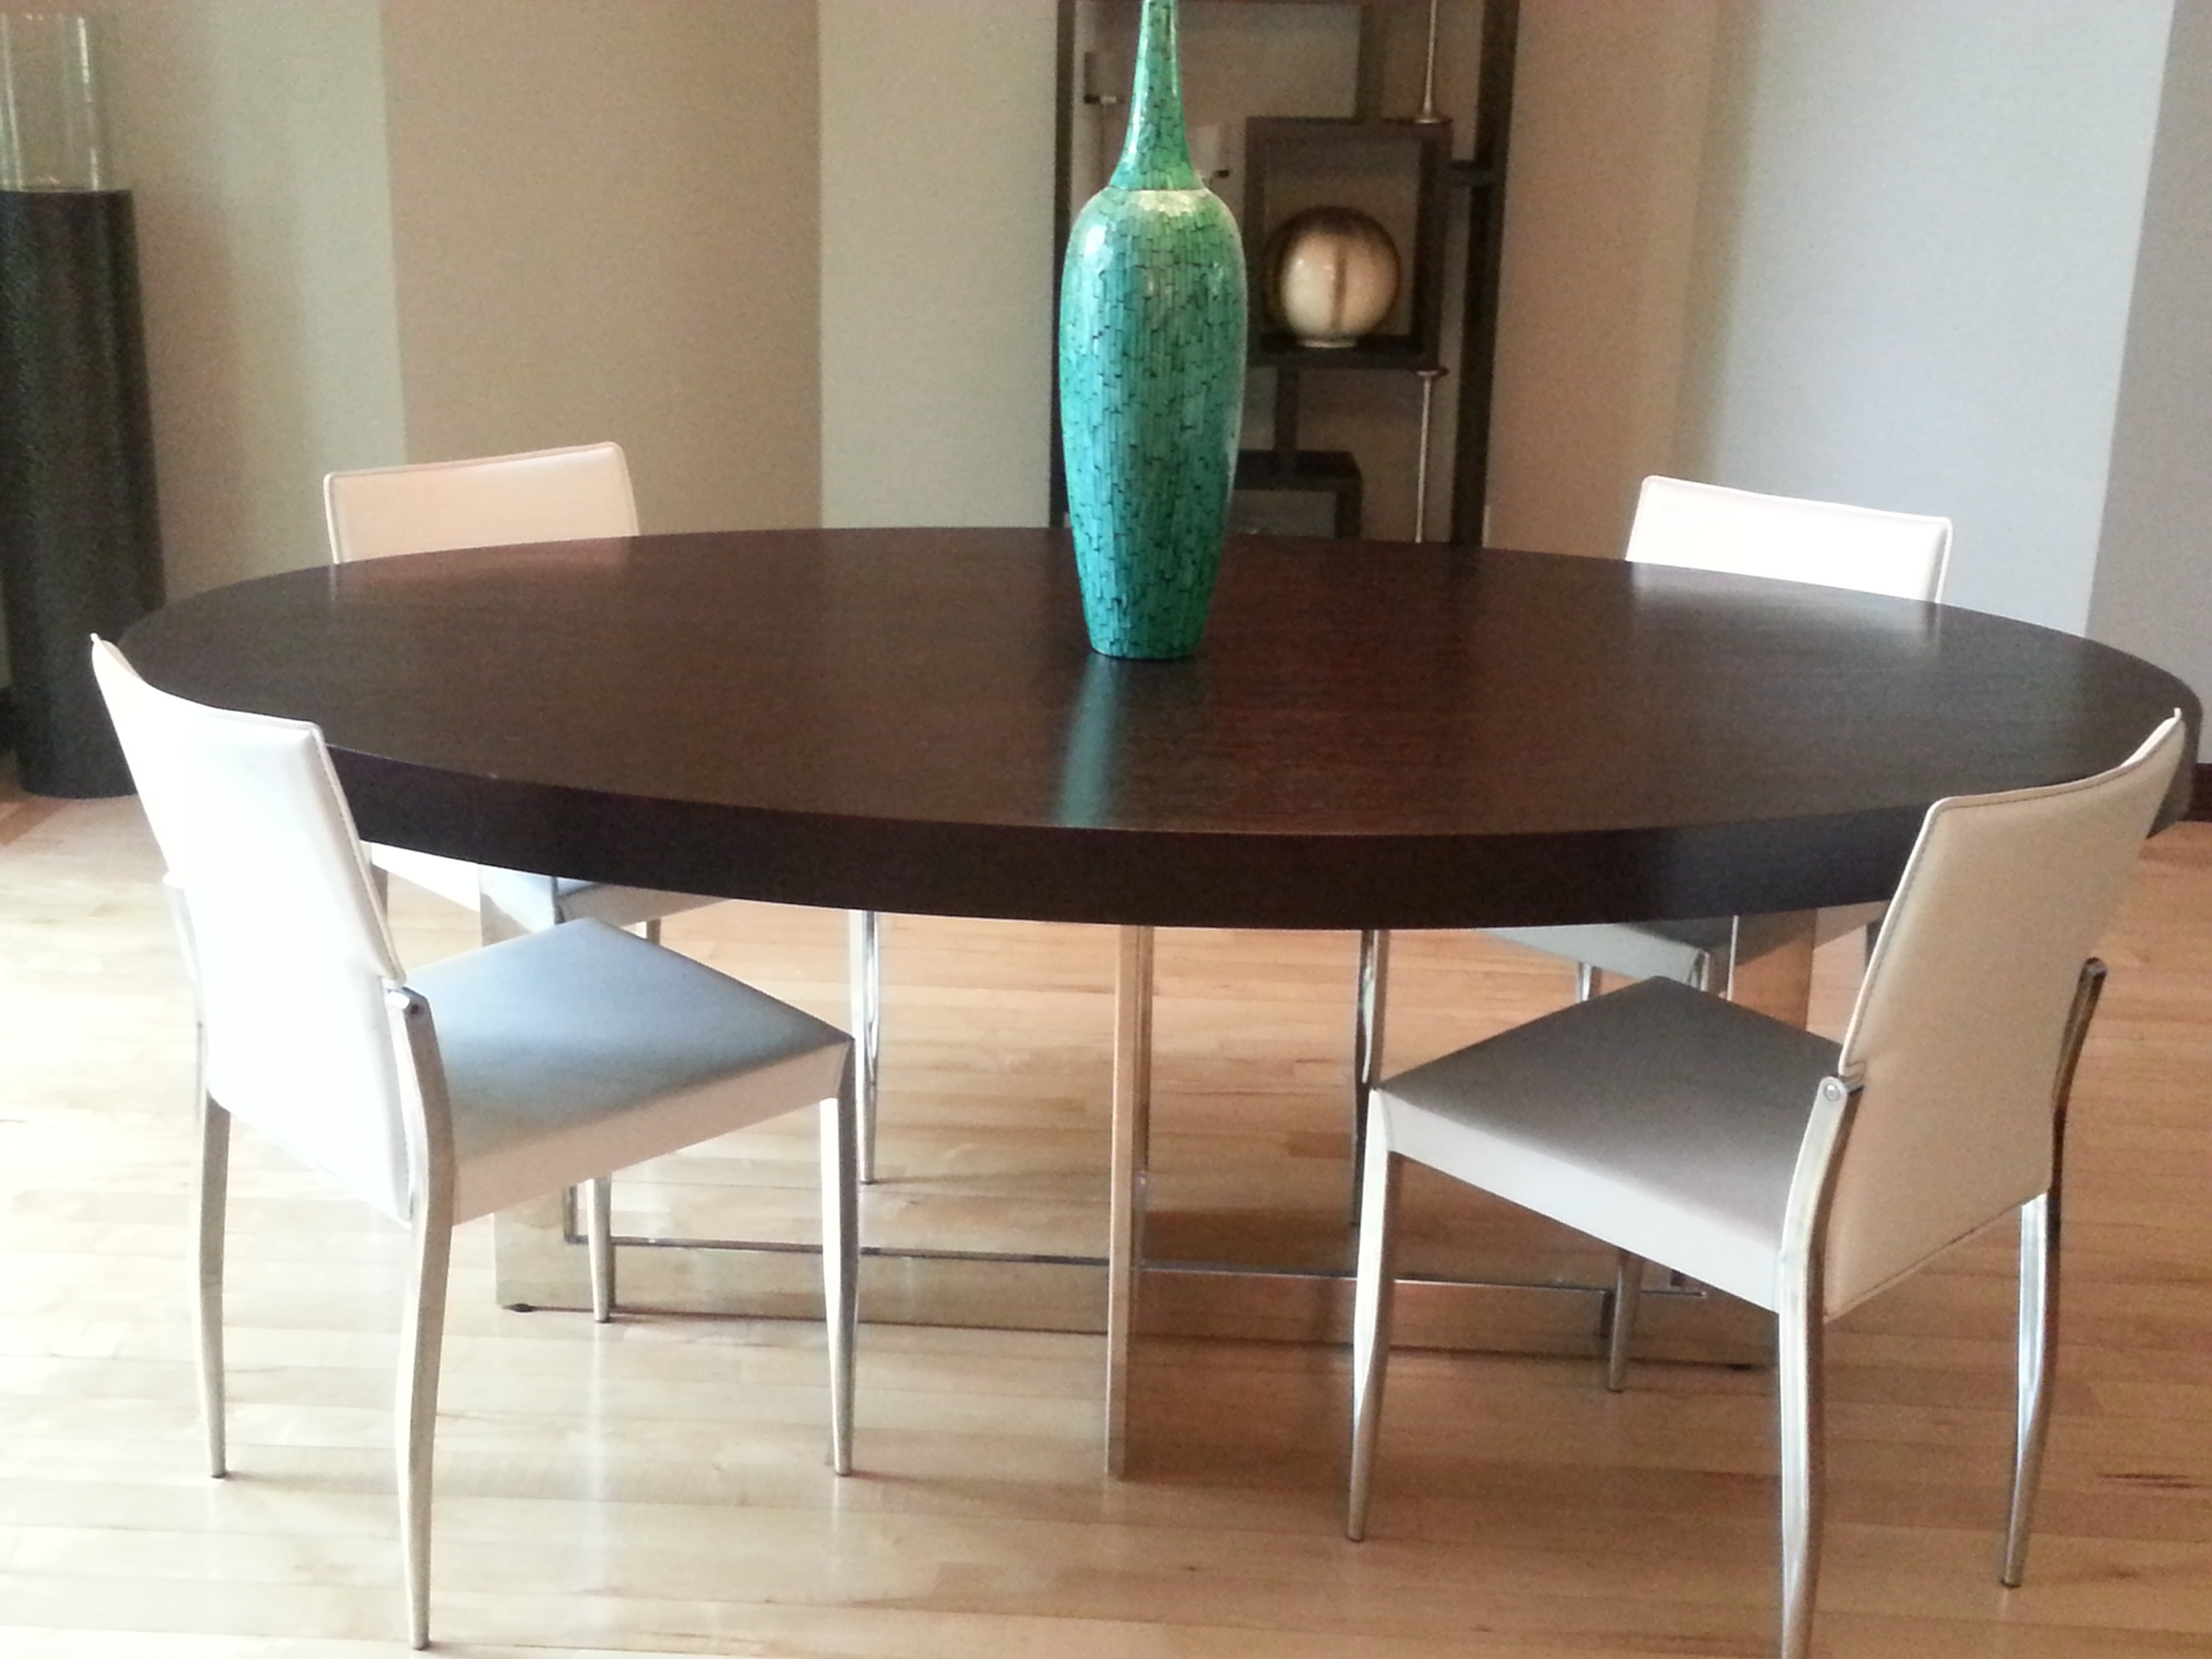 Famous Contemporary Large Oval Dark Wood Dining Table With Stainless Steel For Dining Tables Dark Wood (View 9 of 25)